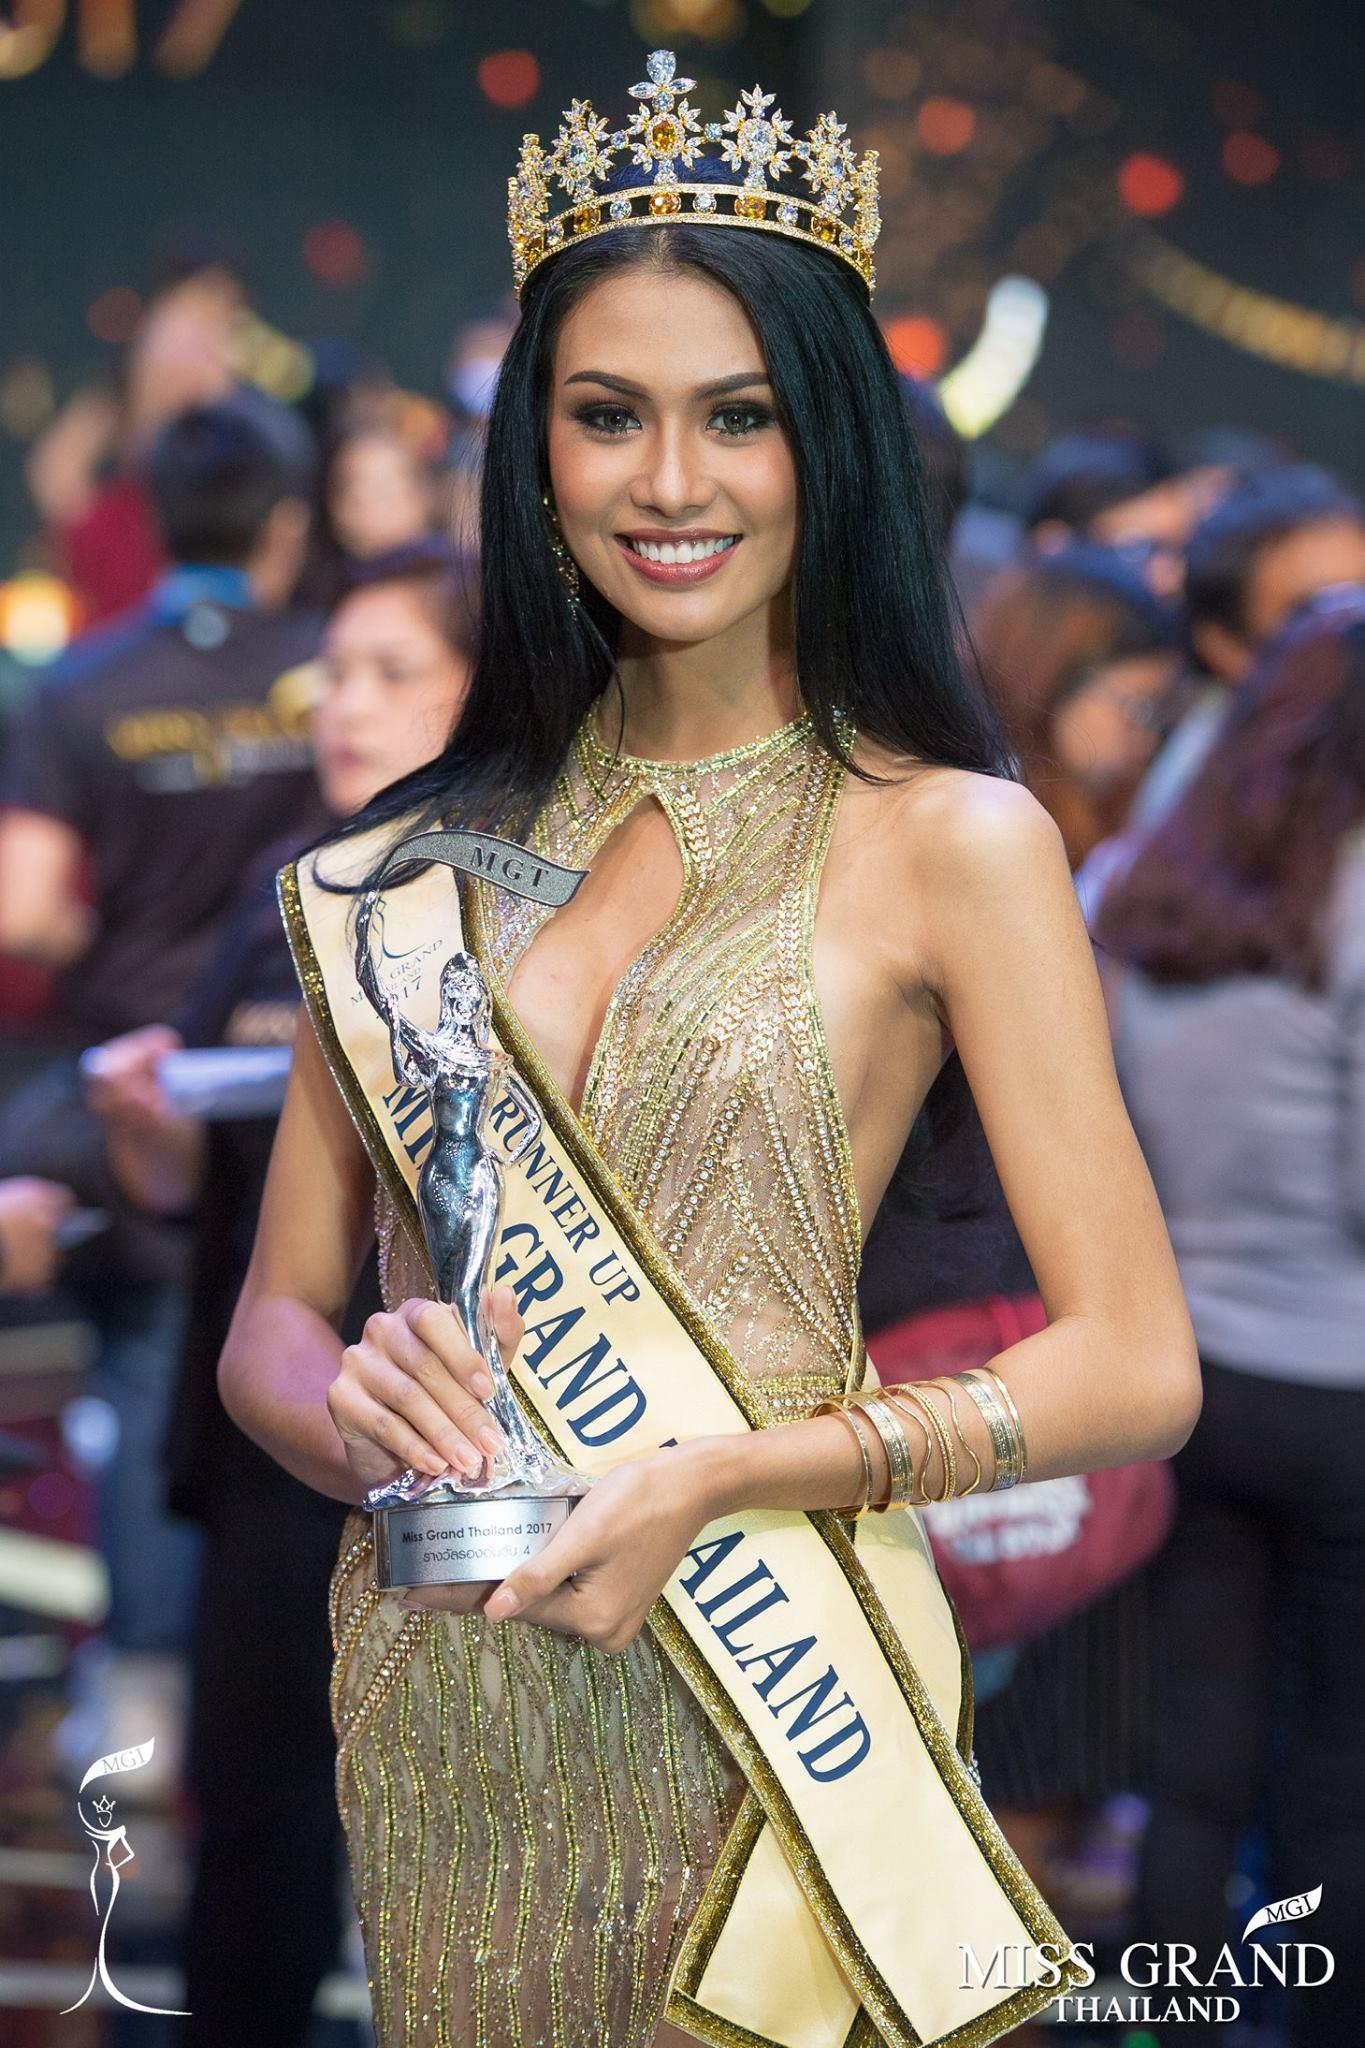 Panghom Kamolrut Tanon Miss Grand Thailand 2017 Fourth Runner-Up (Courtesy - FaceBook/missgrandthailand)